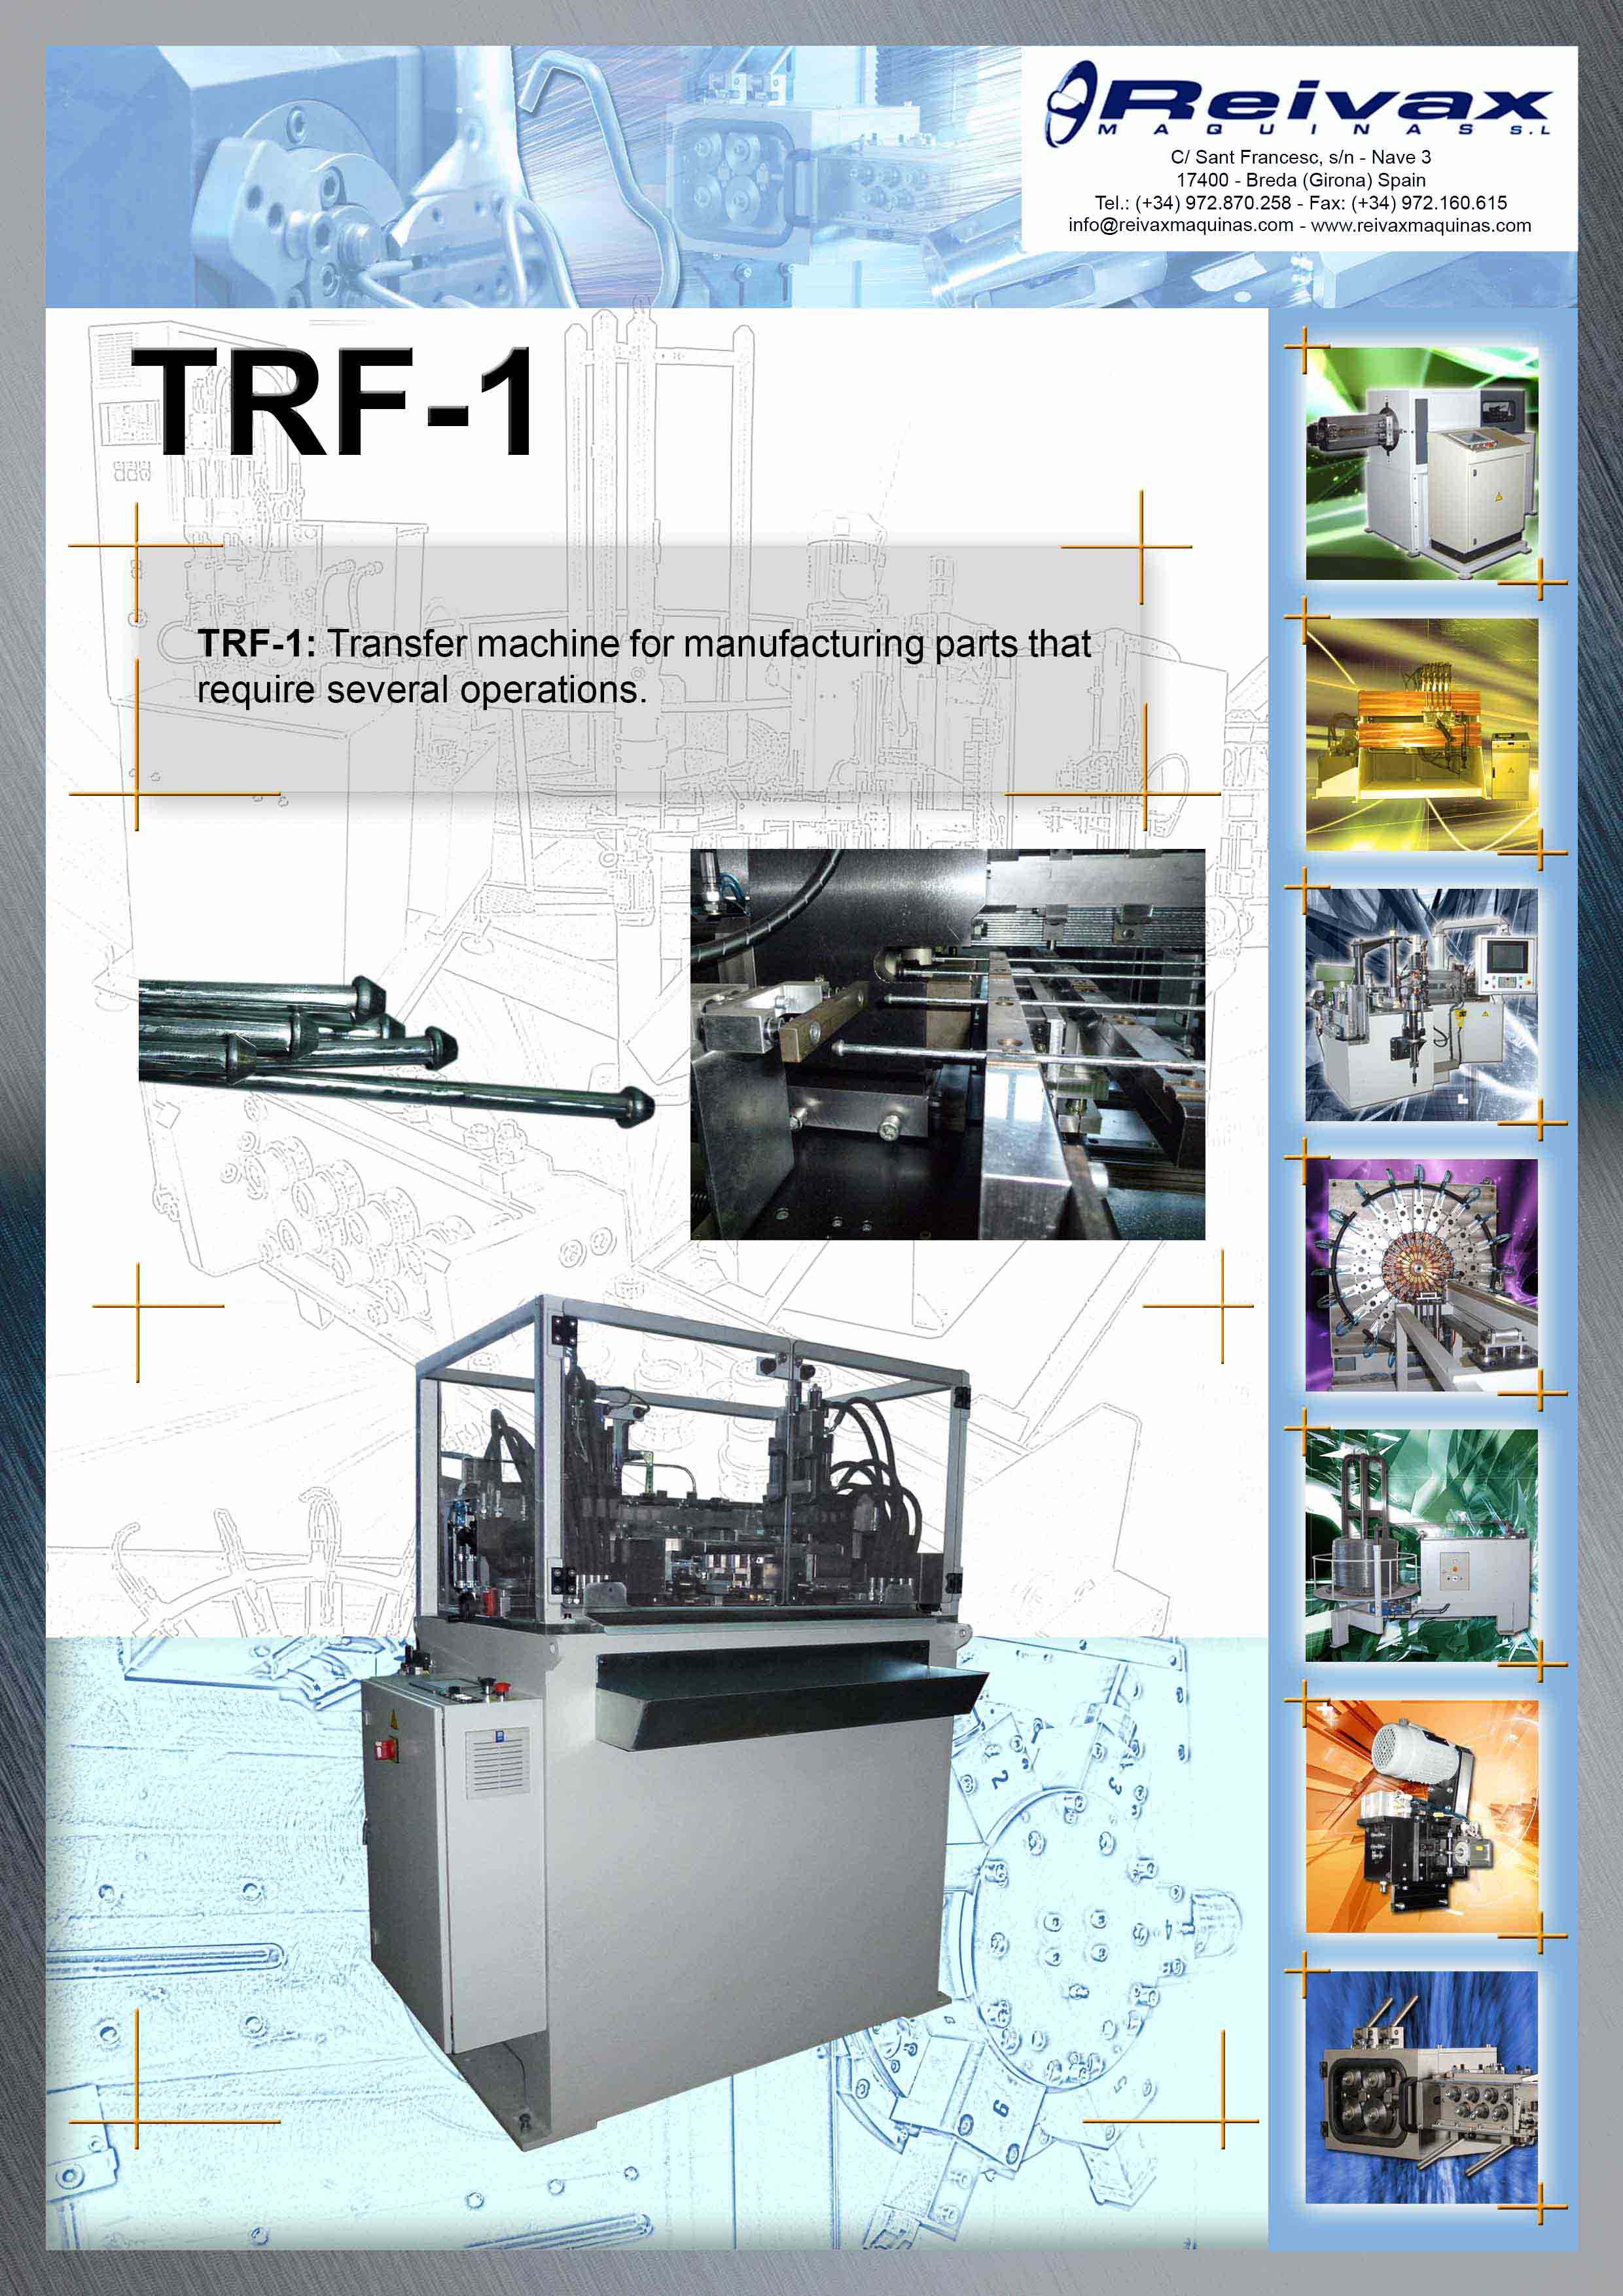 ReivaxMaquinas: Technical Details TRF-1